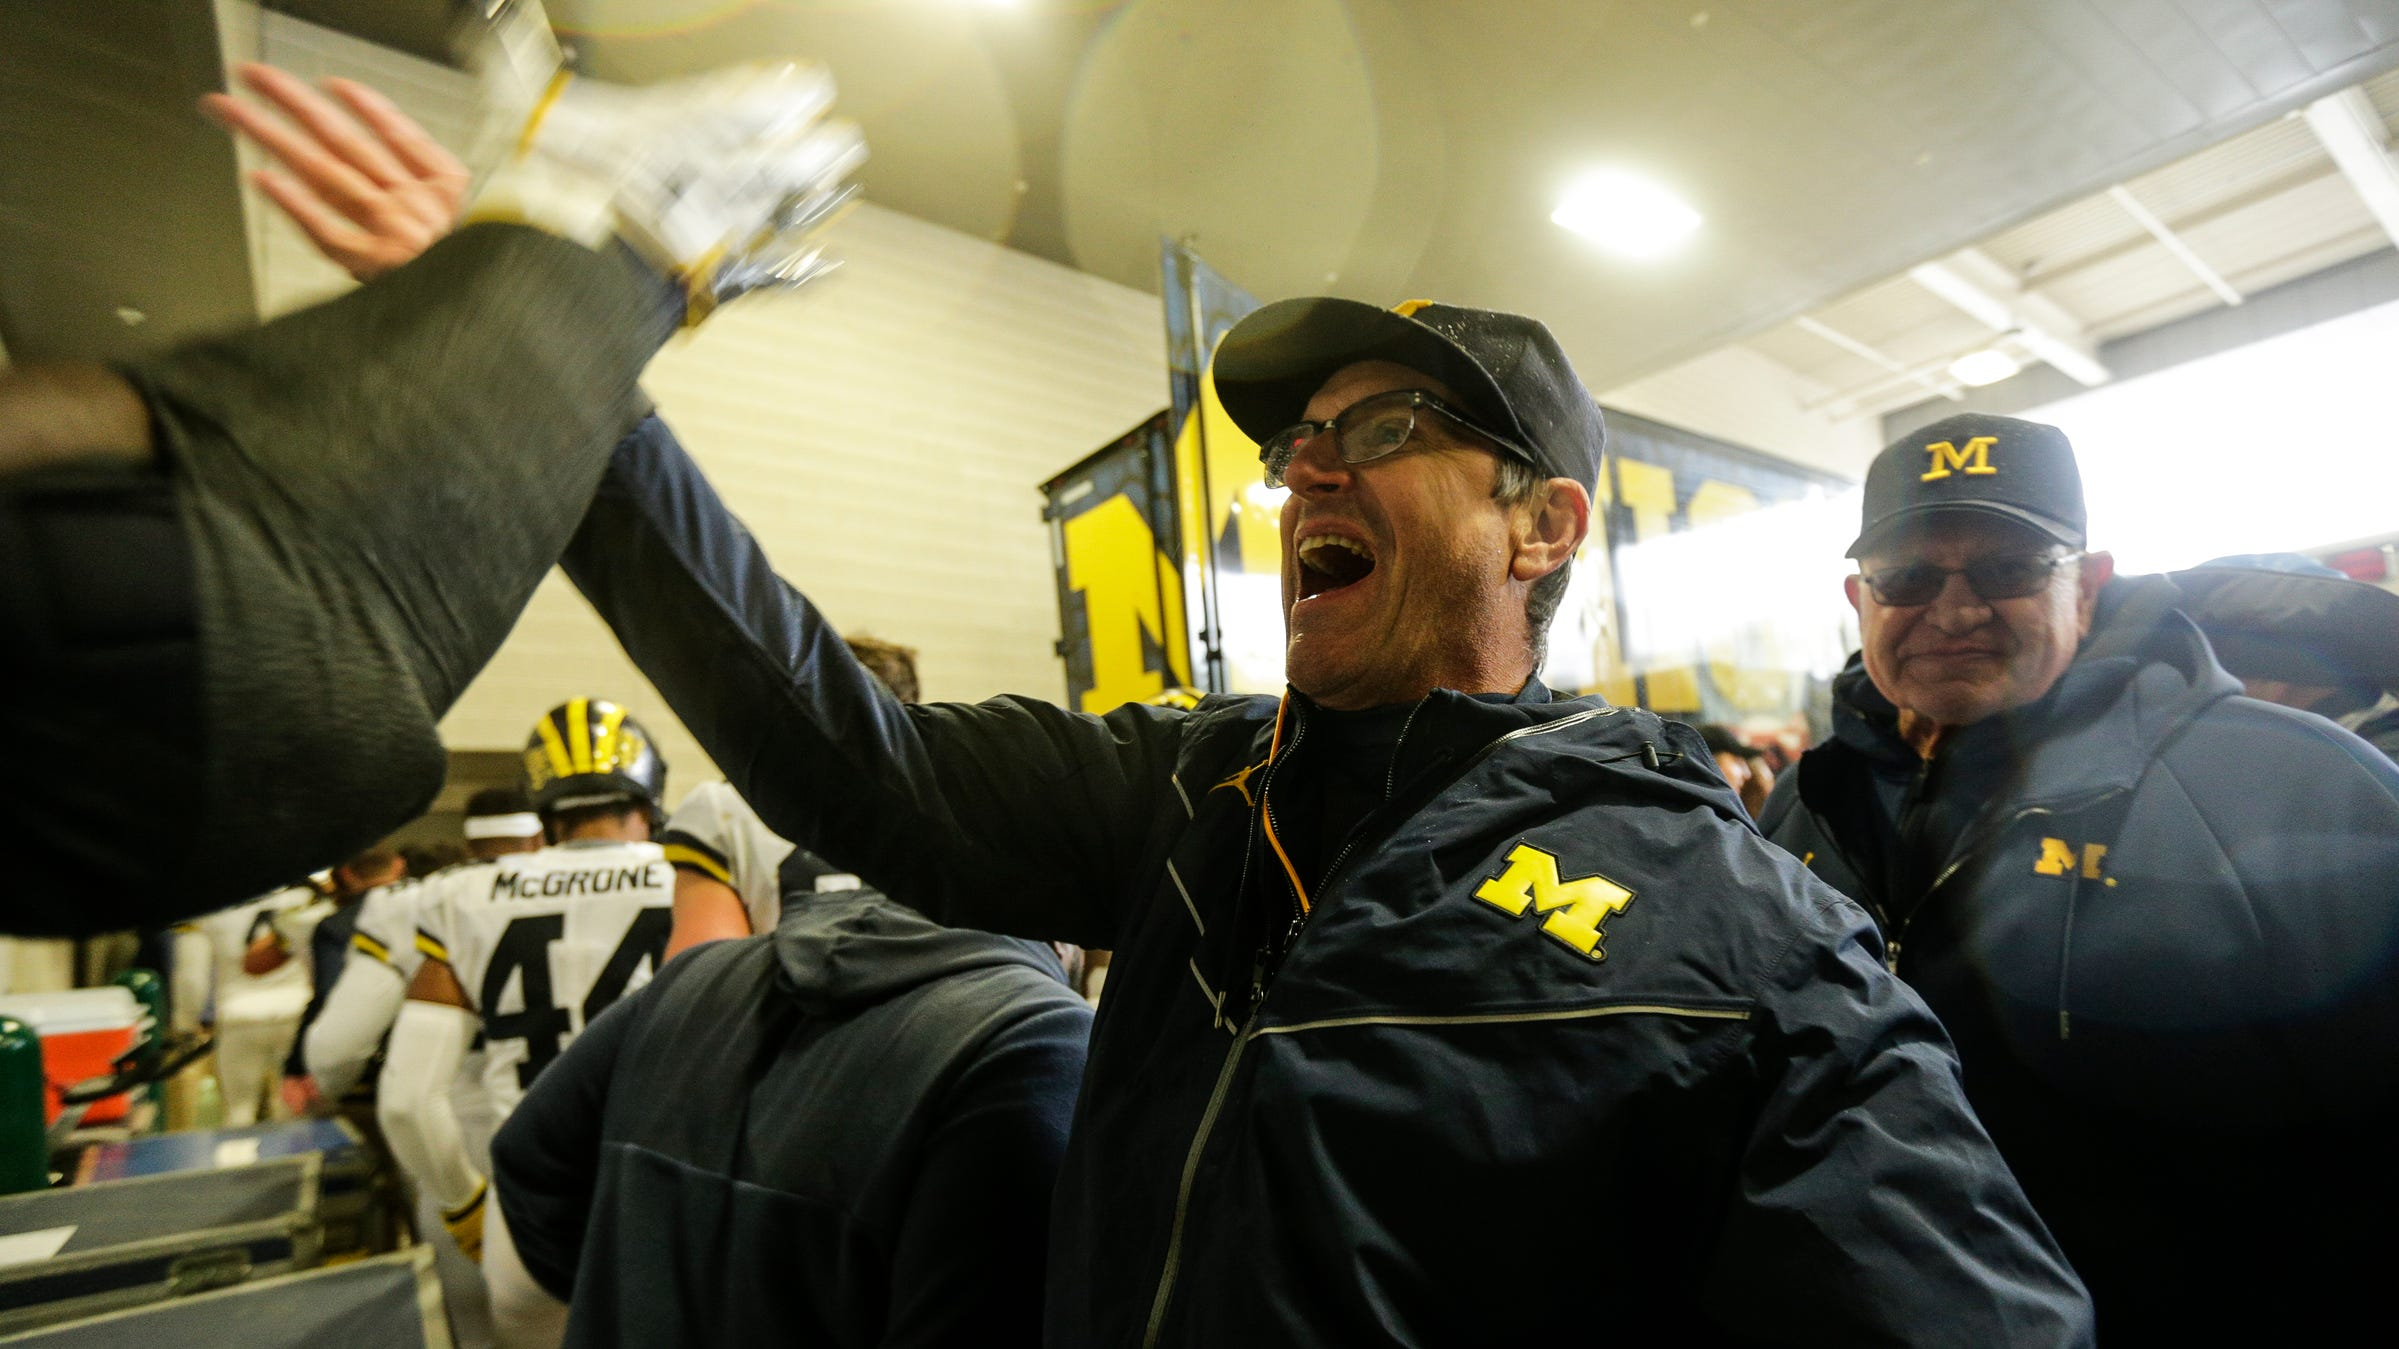 Michigan coach Jim Harbaugh high-fives players and coaches at the end of the tunnel after the 21-7 win over Michigan State on Spartan Stadium in East Lansing, Saturday, Oct. 20, 2018.